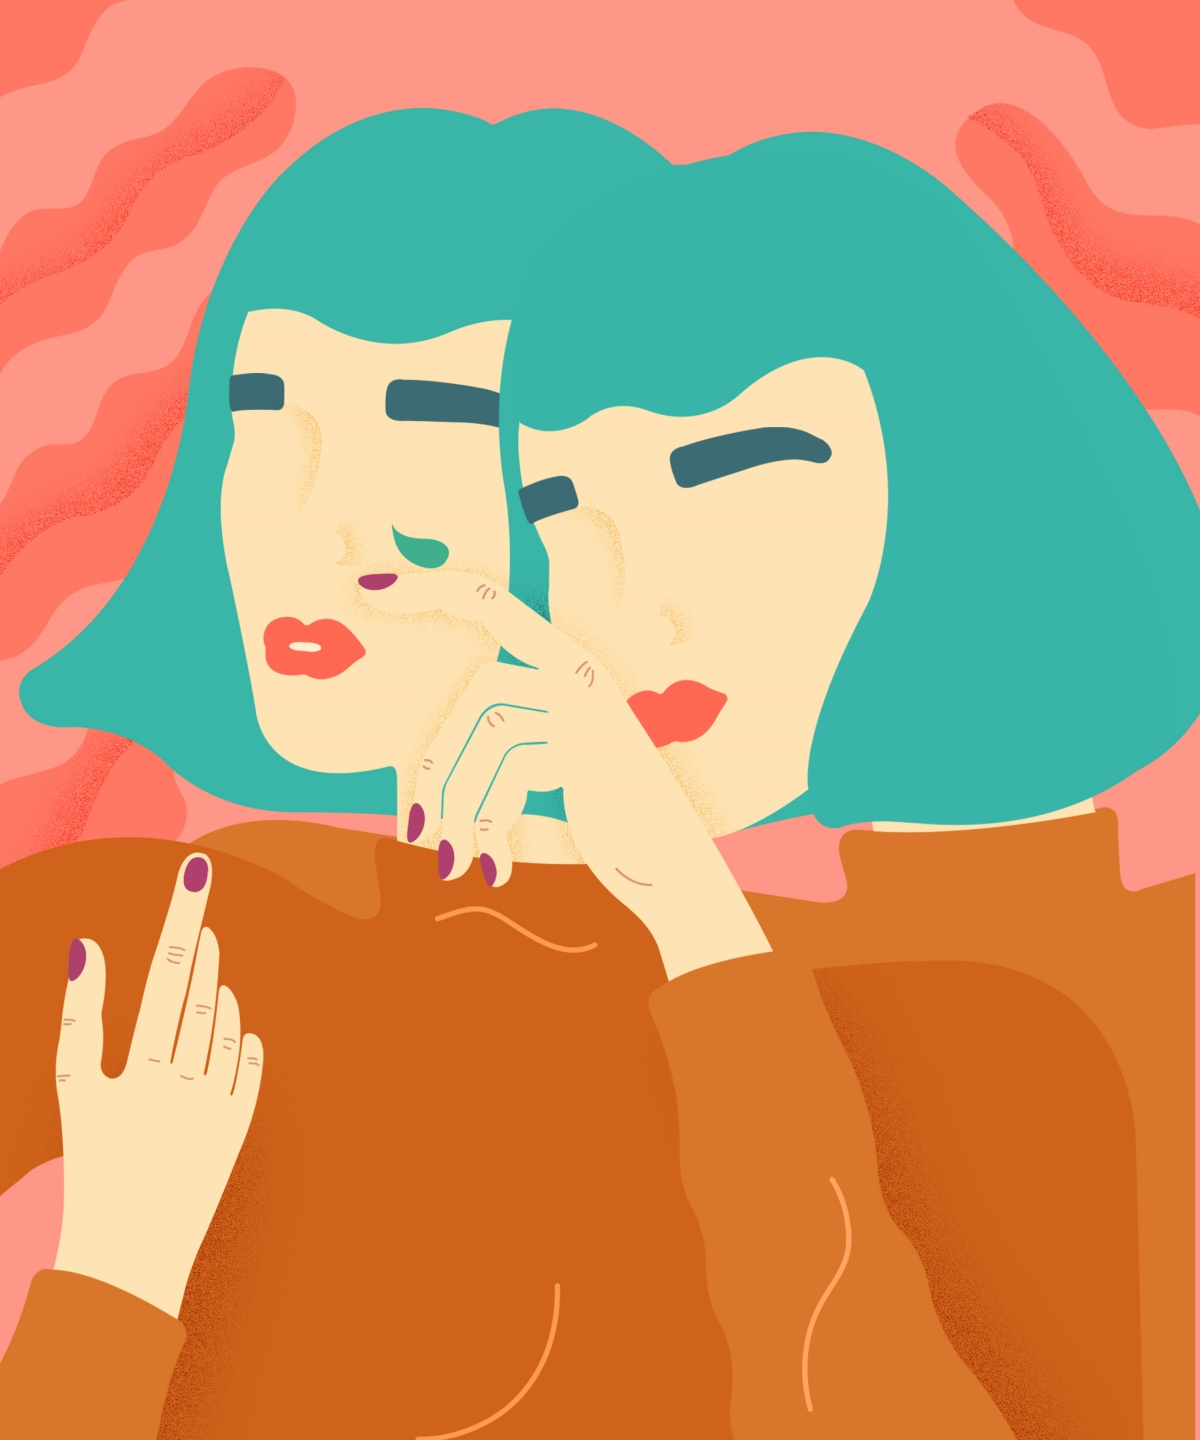 Illustration from a series focused on mental health, depression and anxiety for Refinery29